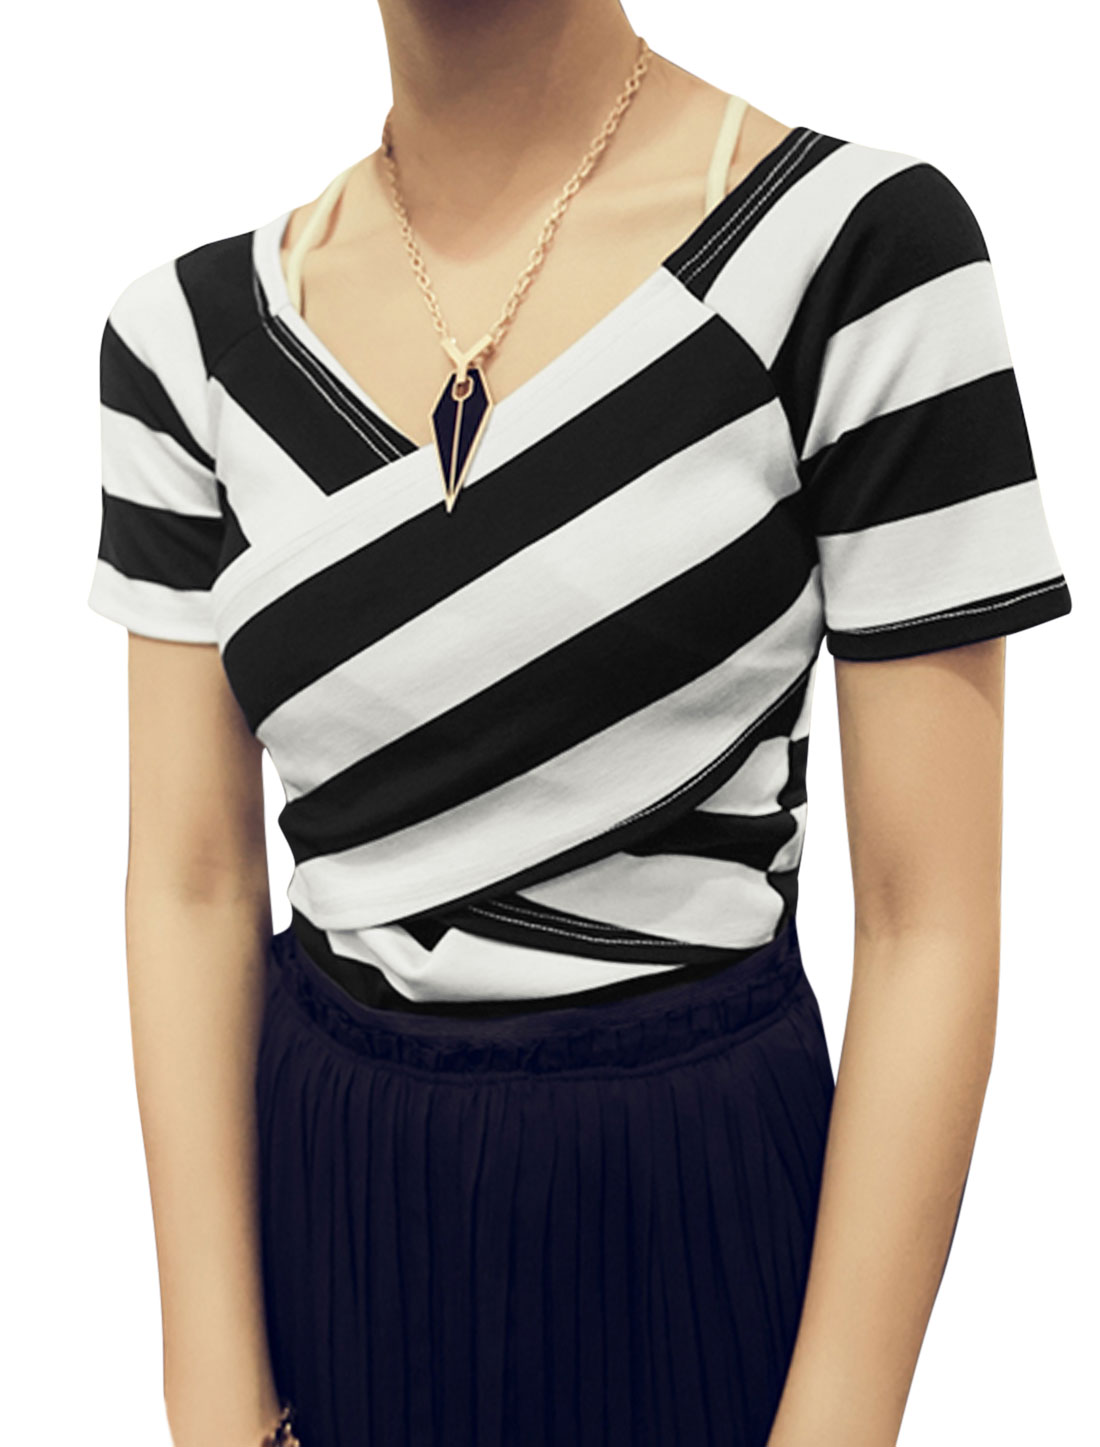 Lady V Neck Short Raglan Sleeve Stripes T-Shirt Black White XS